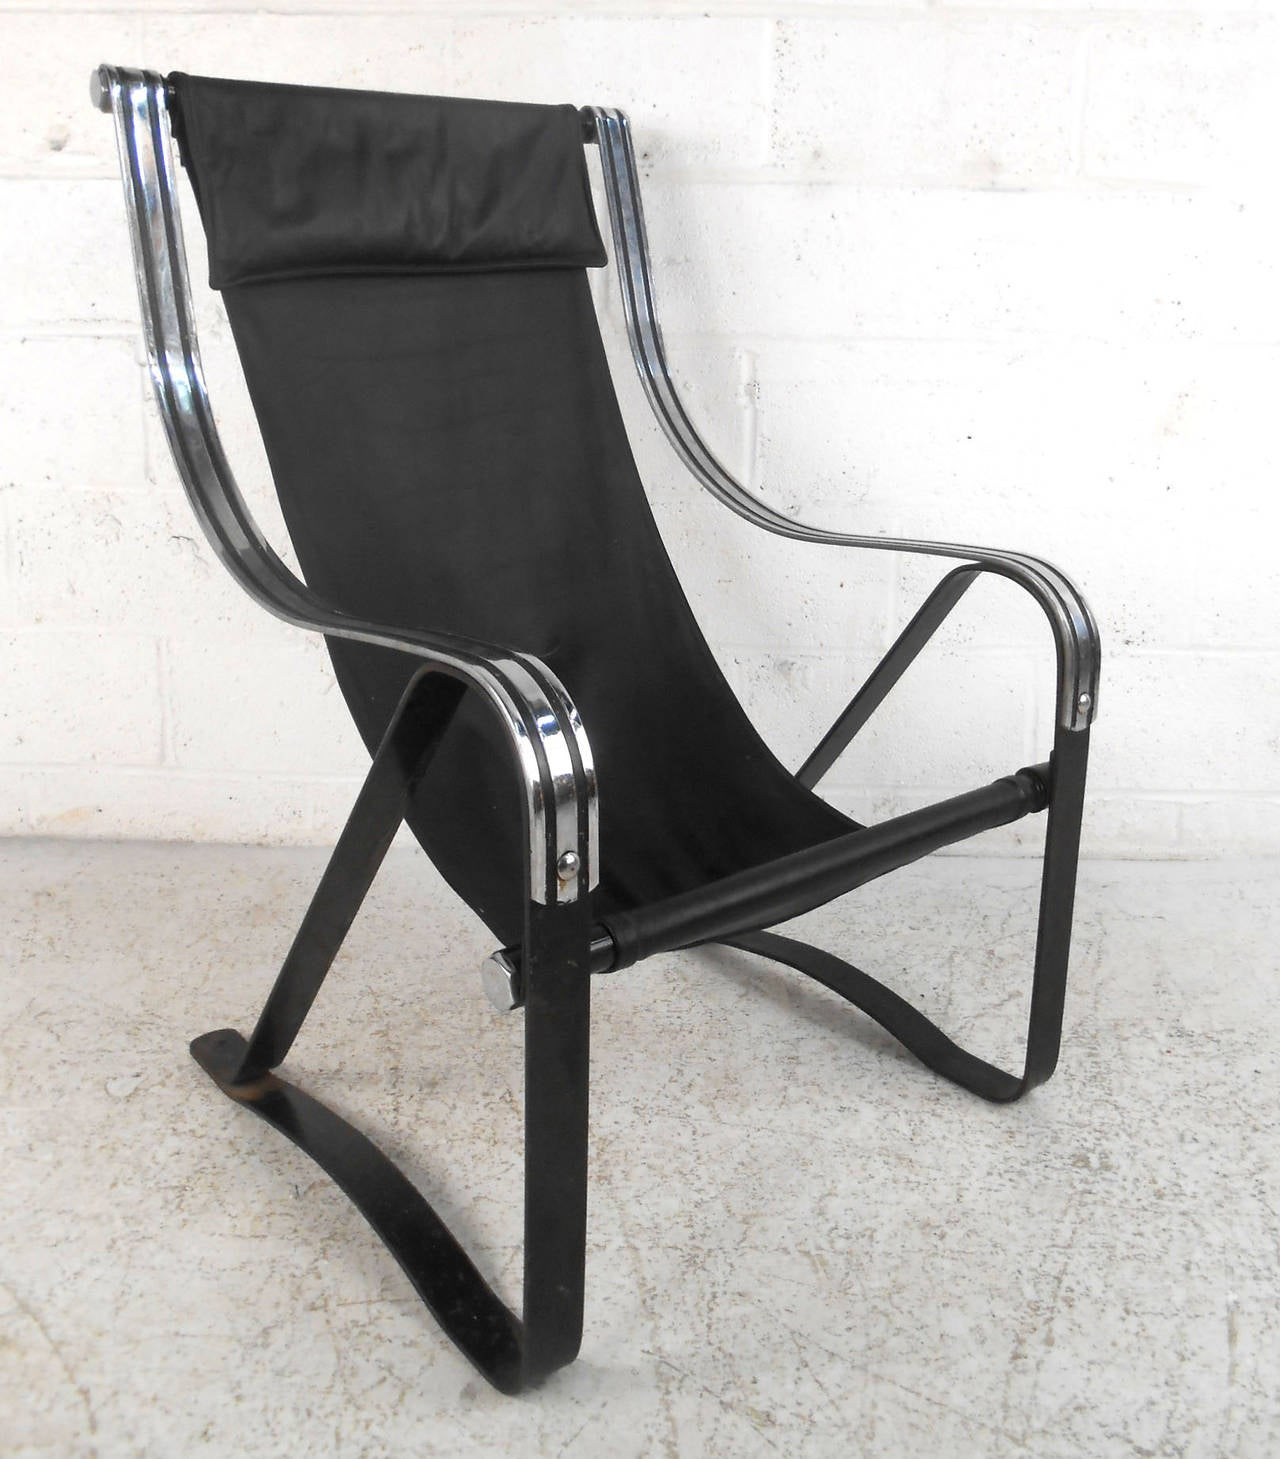 This stylish chair combines leather, iron, and chrome to create a comfortable midcentury seating option for any room. Unique head rest, decorative chrome, and cantilevered base make this a wonderful addition to any room. Please confirm item location